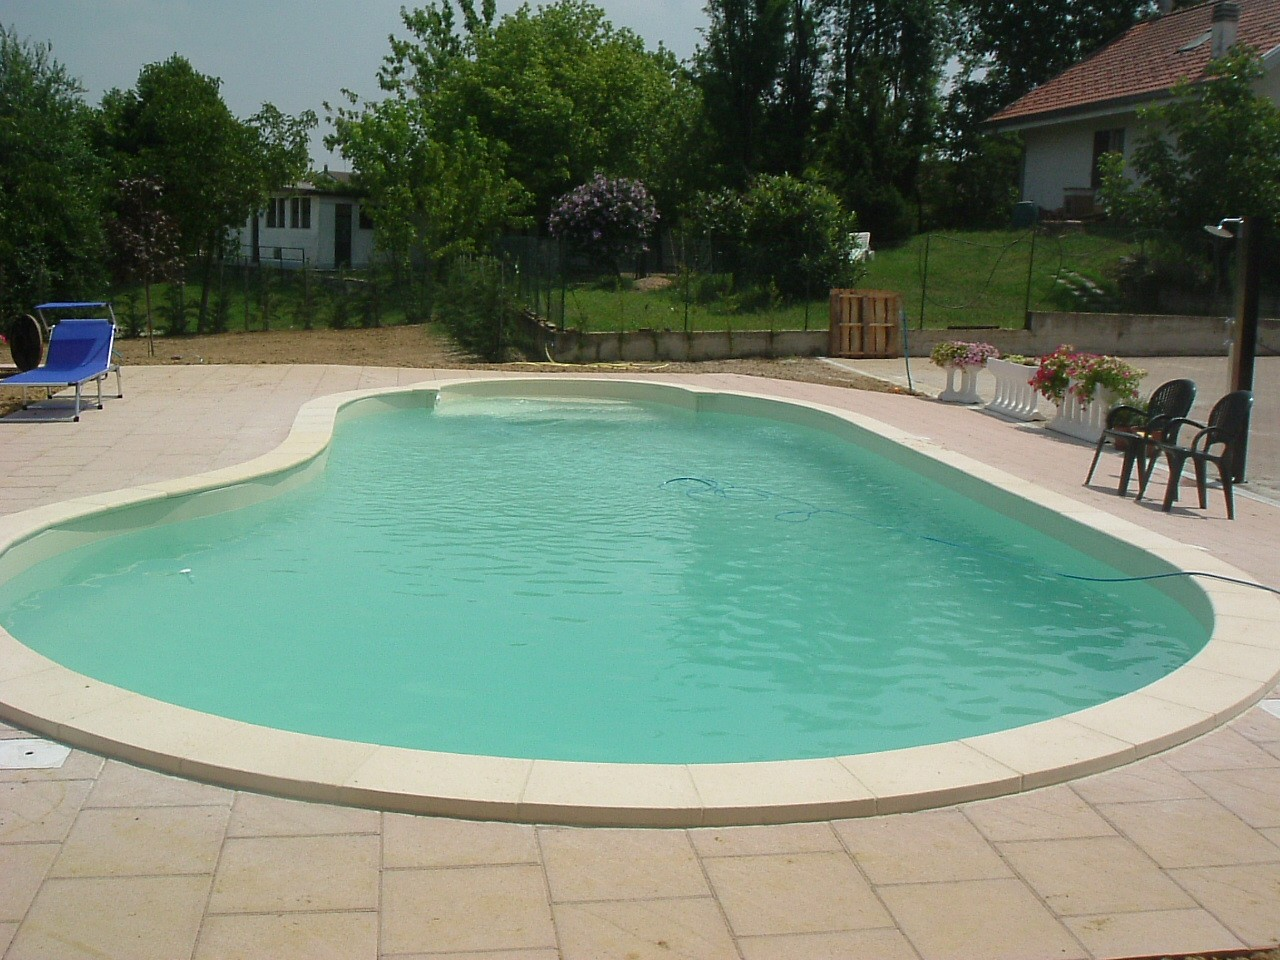 Piscine interrate - Dimensioni piscina ...